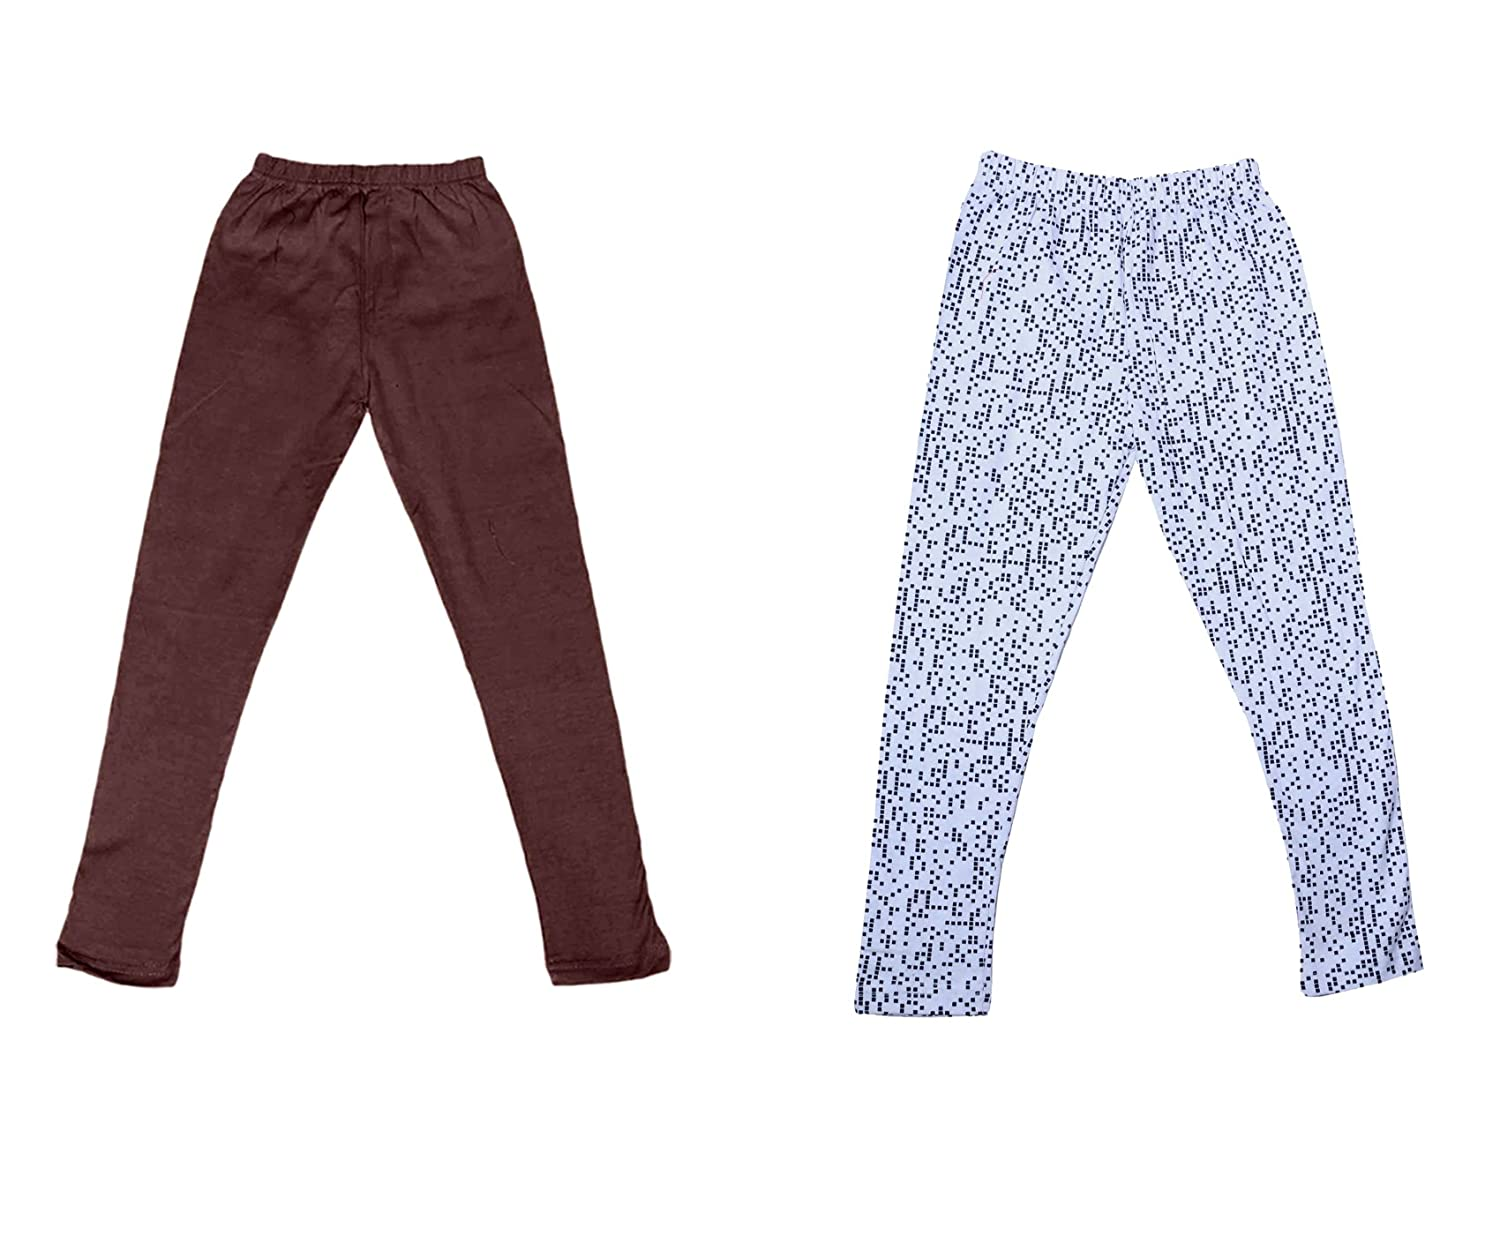 /_Multicolor/_Size-11-12 Years/_7141321-IW-P2-34 and 1 Cotton Printed Legging Pants Pack Of 2 Indistar Girls 1 Cotton Solid Legging Pants